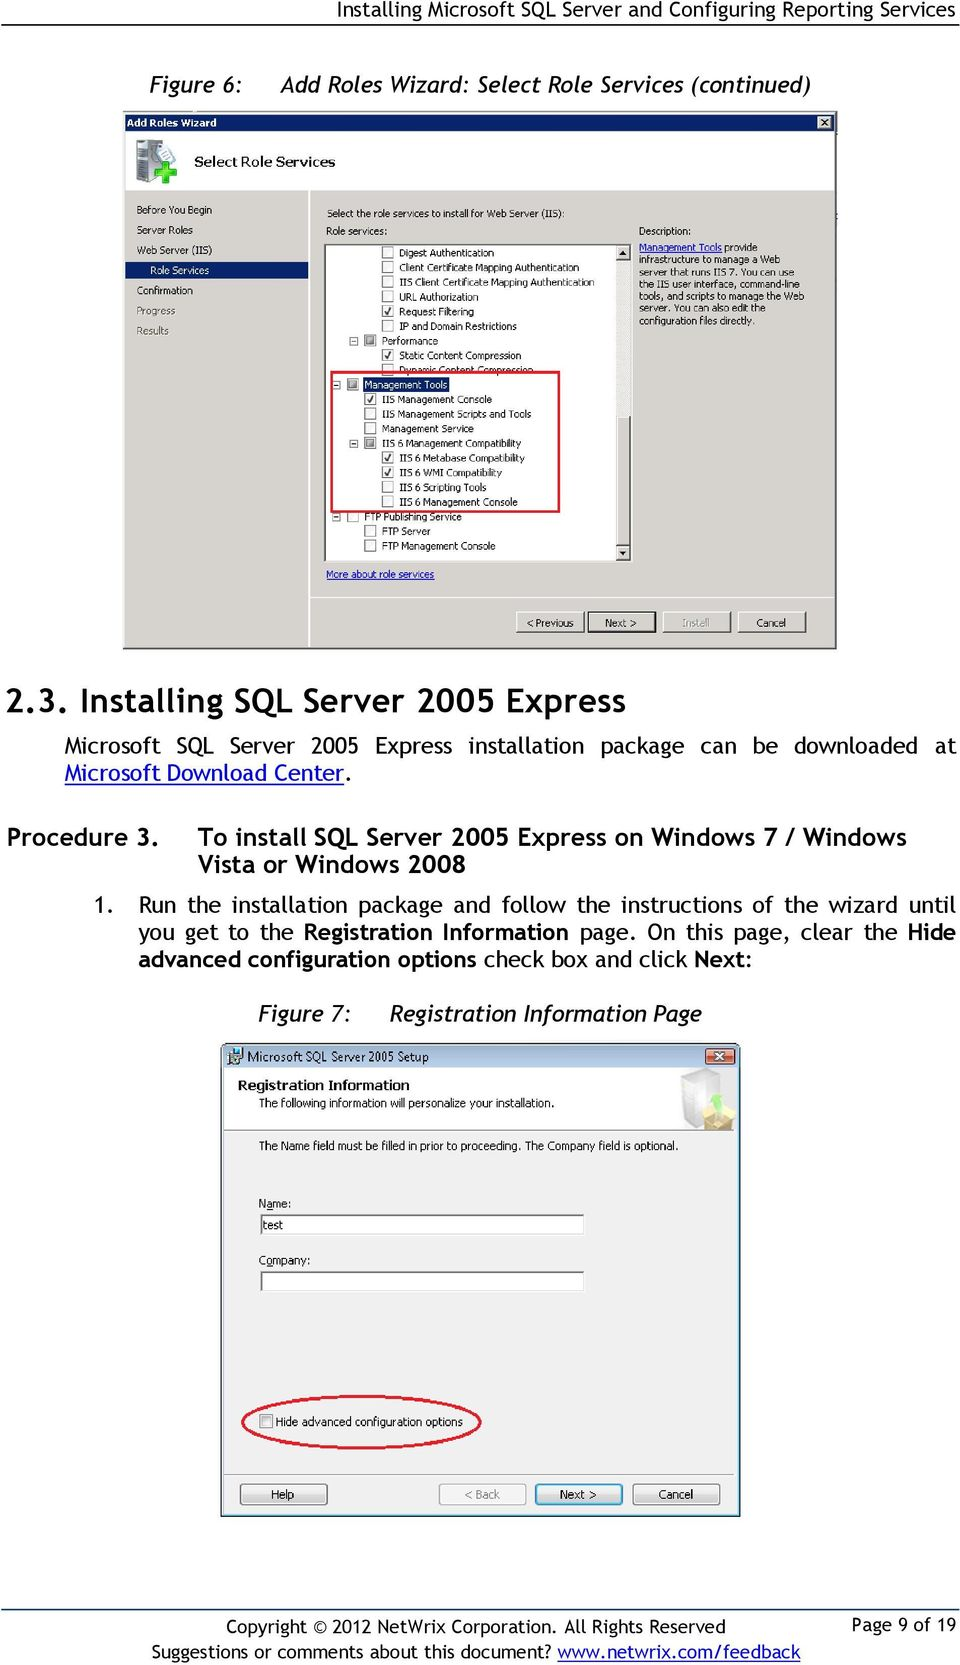 Procedure 3. To install SQL Server 2005 Express on Windows 7 / Windows Vista or Windows 2008 1.